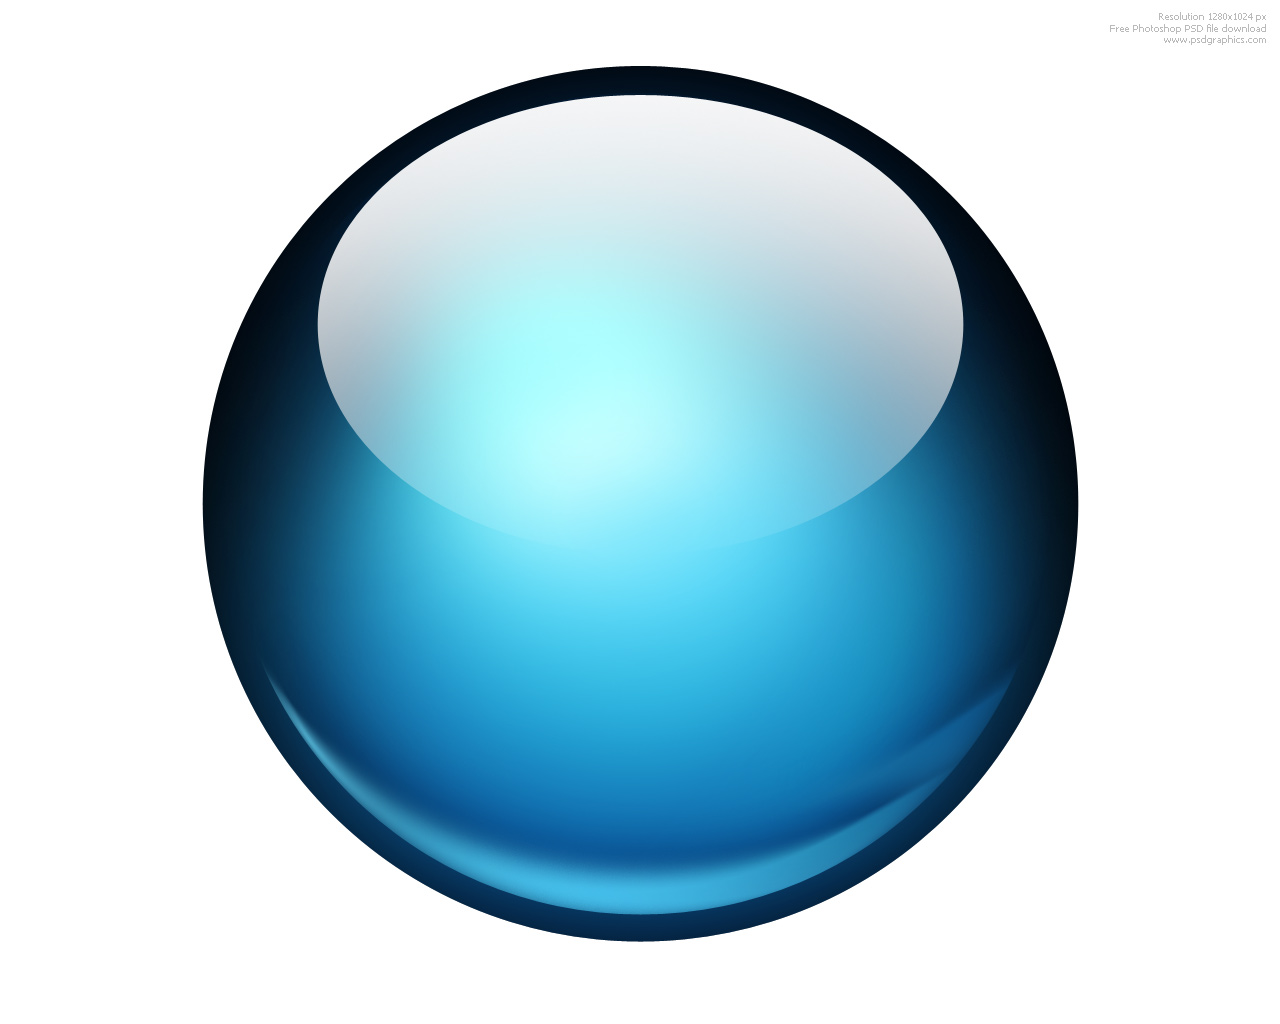 Glossy ball blue icon